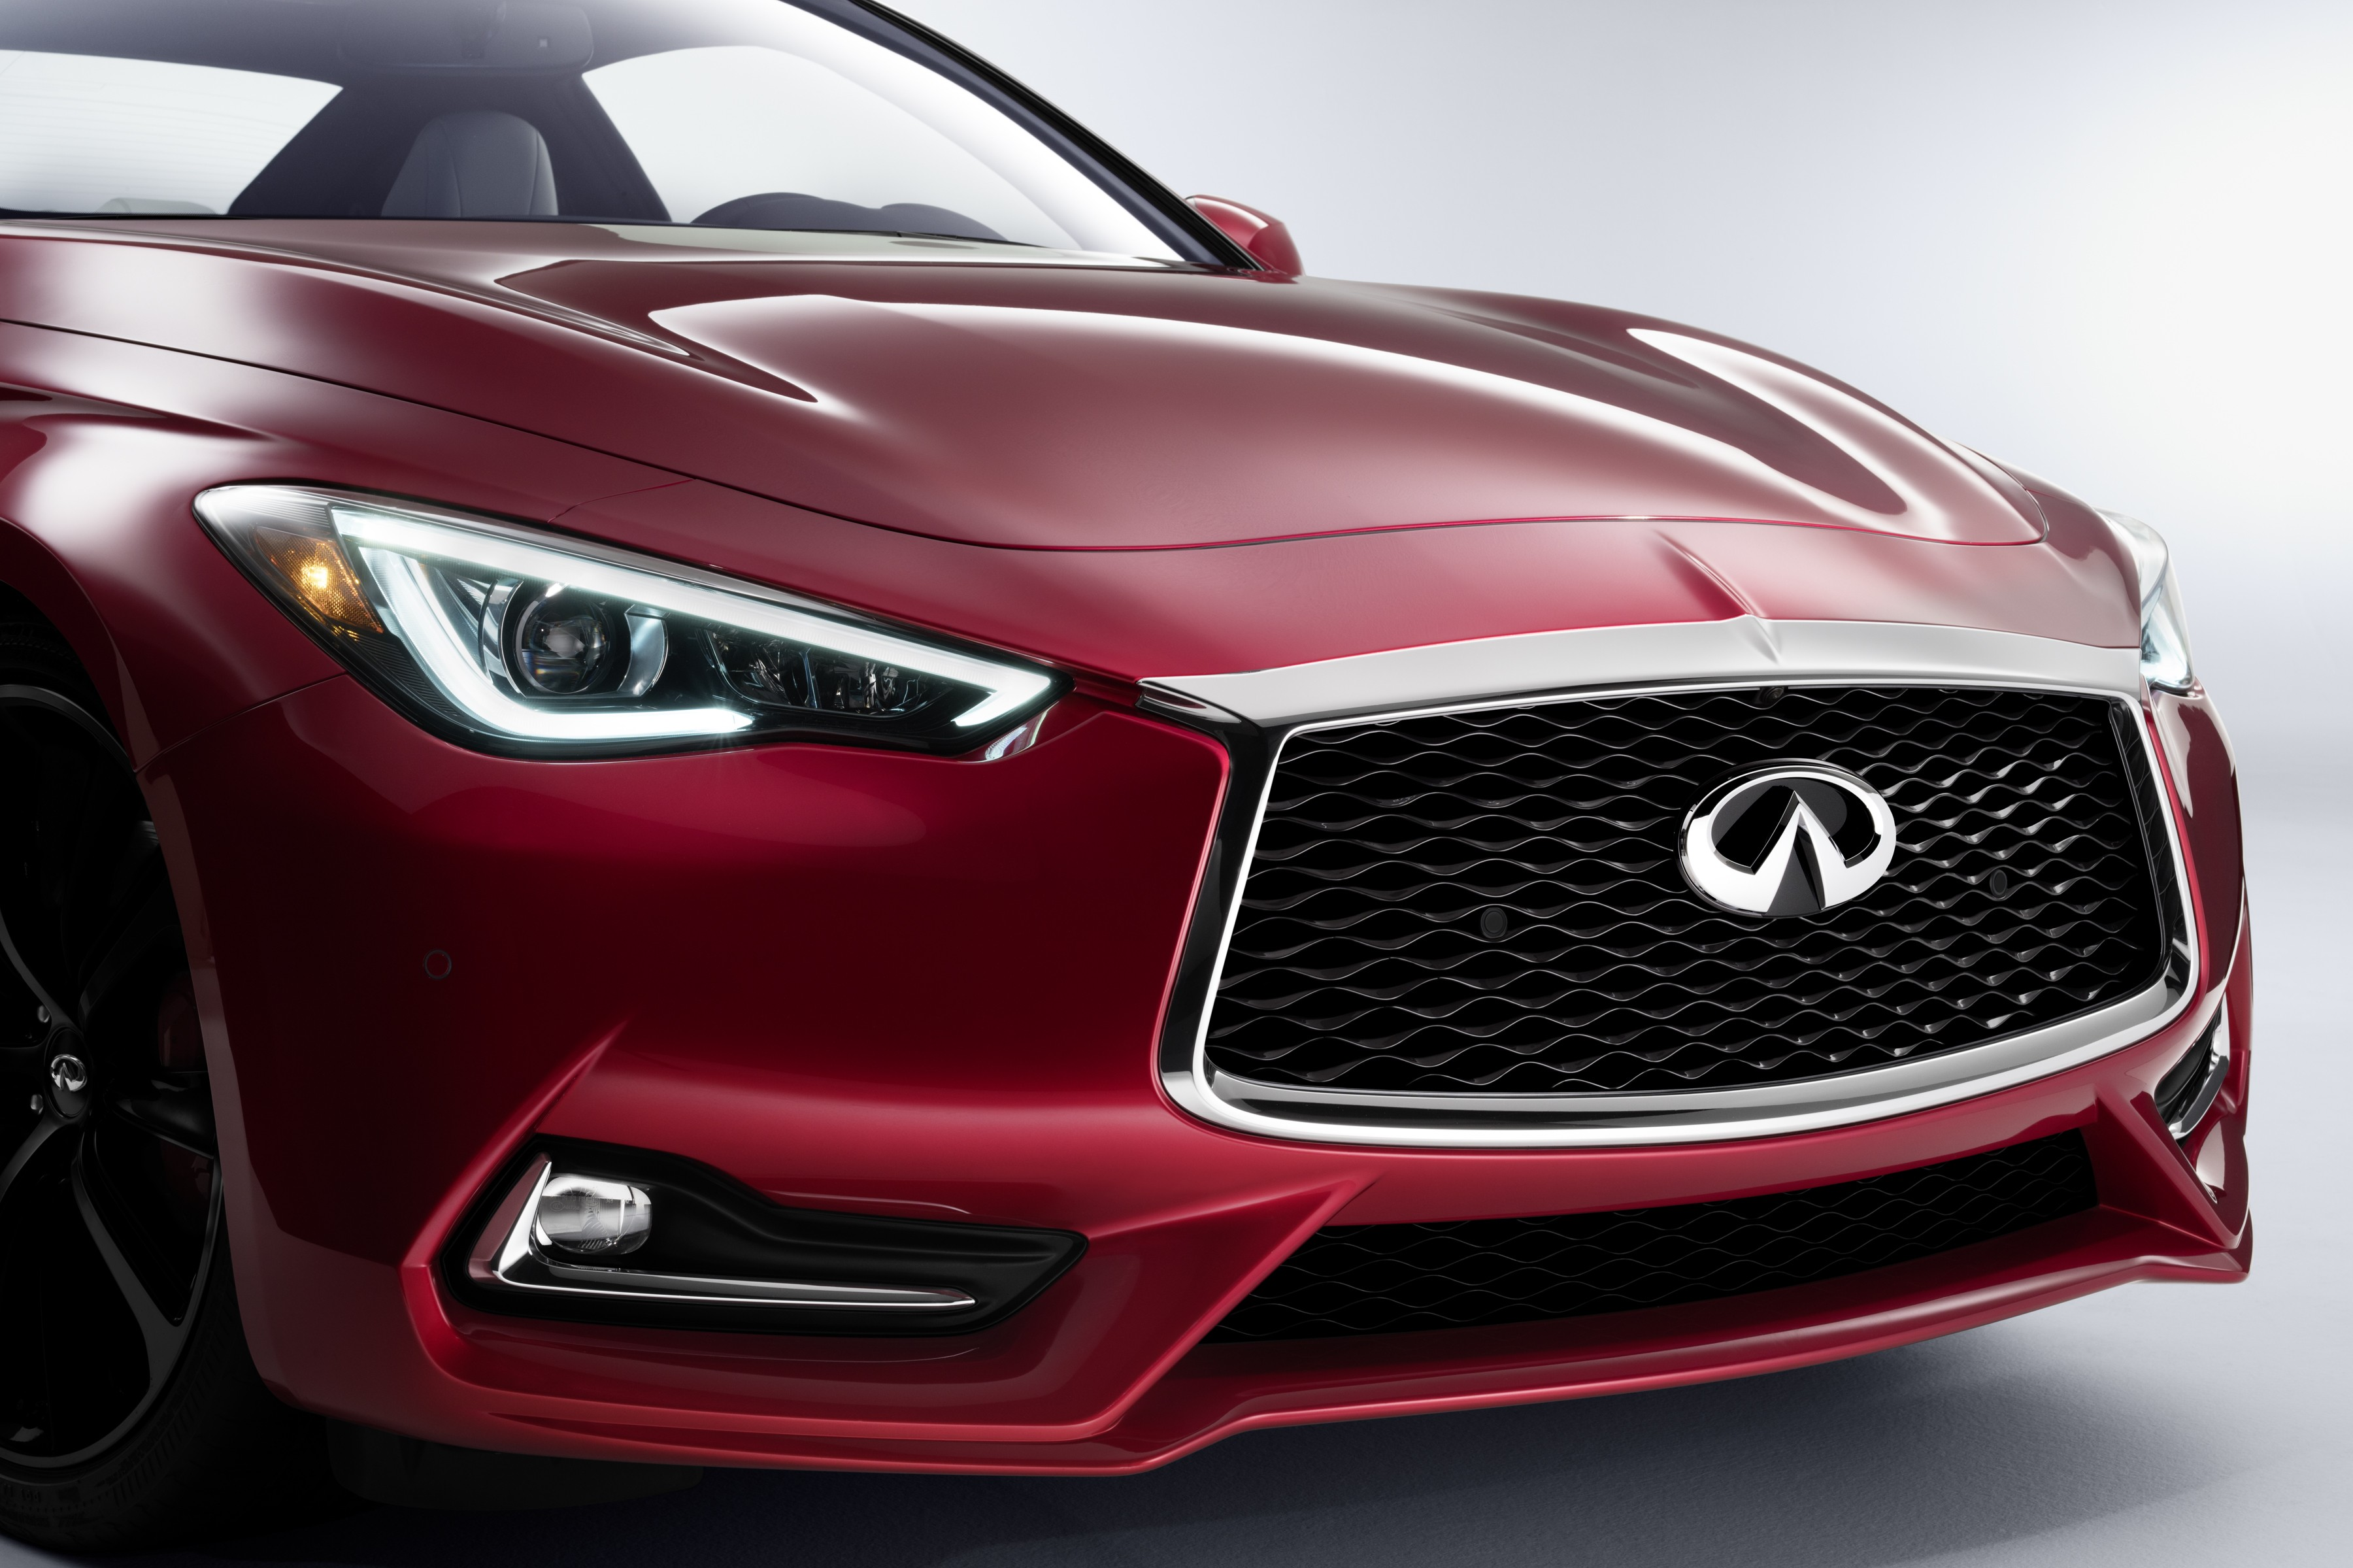 2017 Infiniti Q60 3.0t Red Sport 400 >> 2017 Infiniti Q60 Sports Coupe Priced From $38,950 - autoevolution